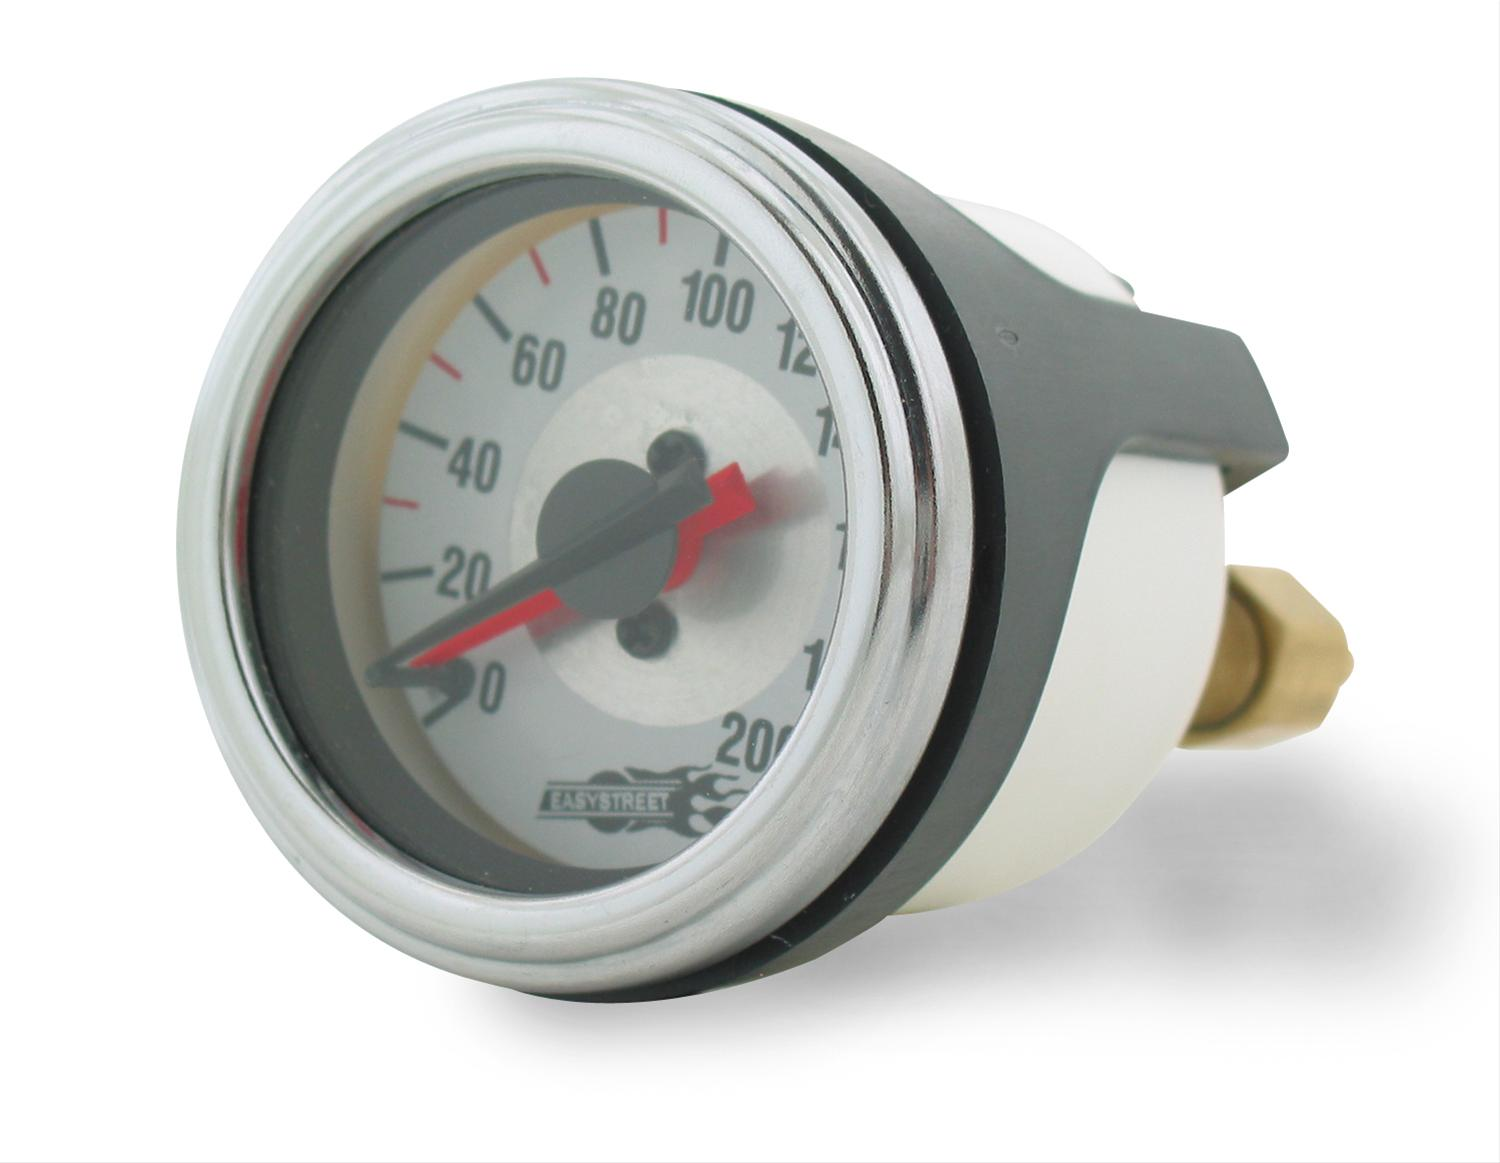 Fork Lift Gauge : Air lift replacement gauges free shipping on